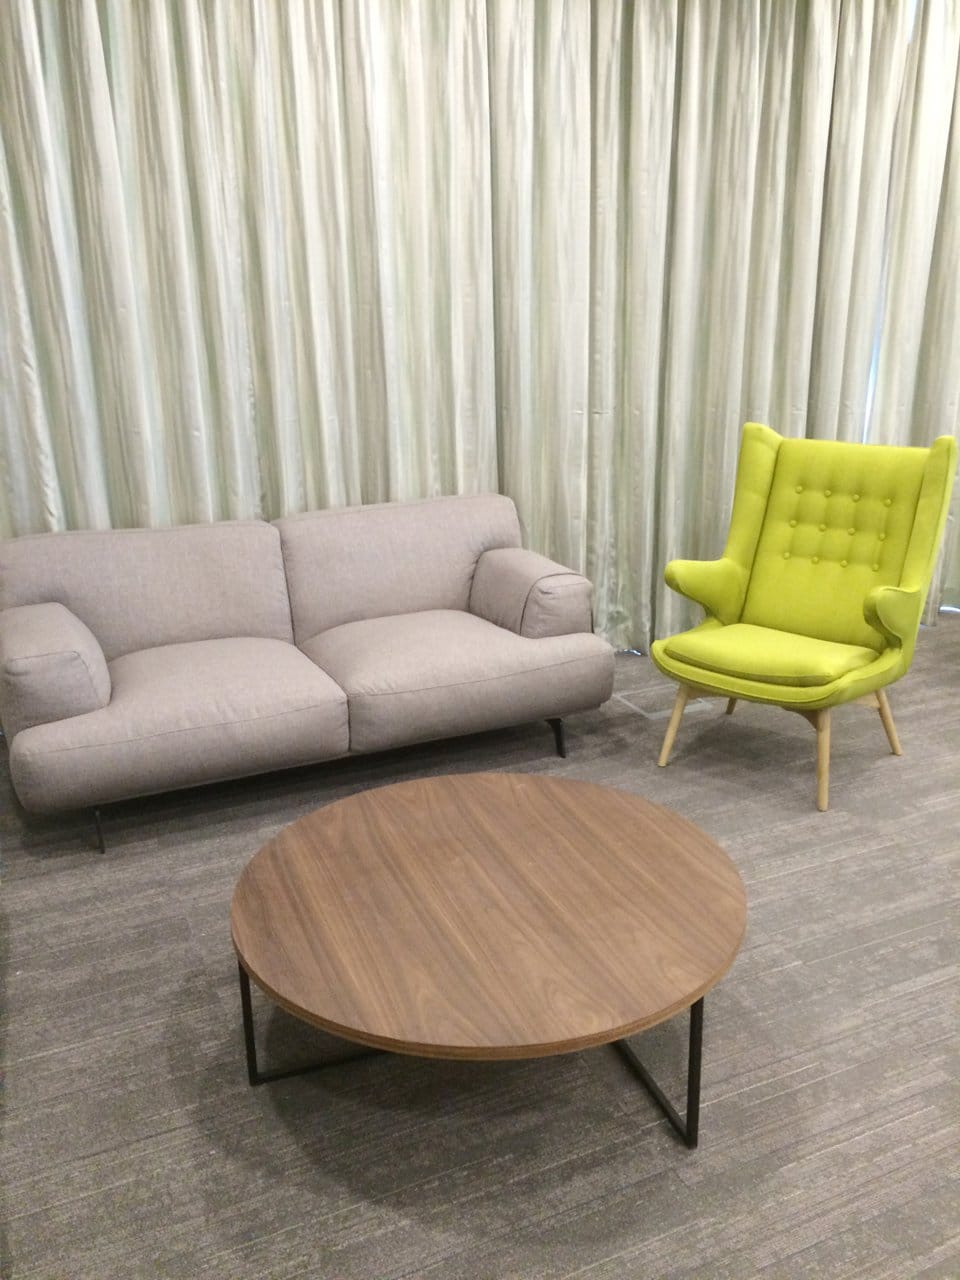 Expedia - New Bridge Road | Products Seen: [Campbell 2.5 Seater Sofa, Satchie Modular Coffee Table & Papa Lounge Set (Replica)]<br />